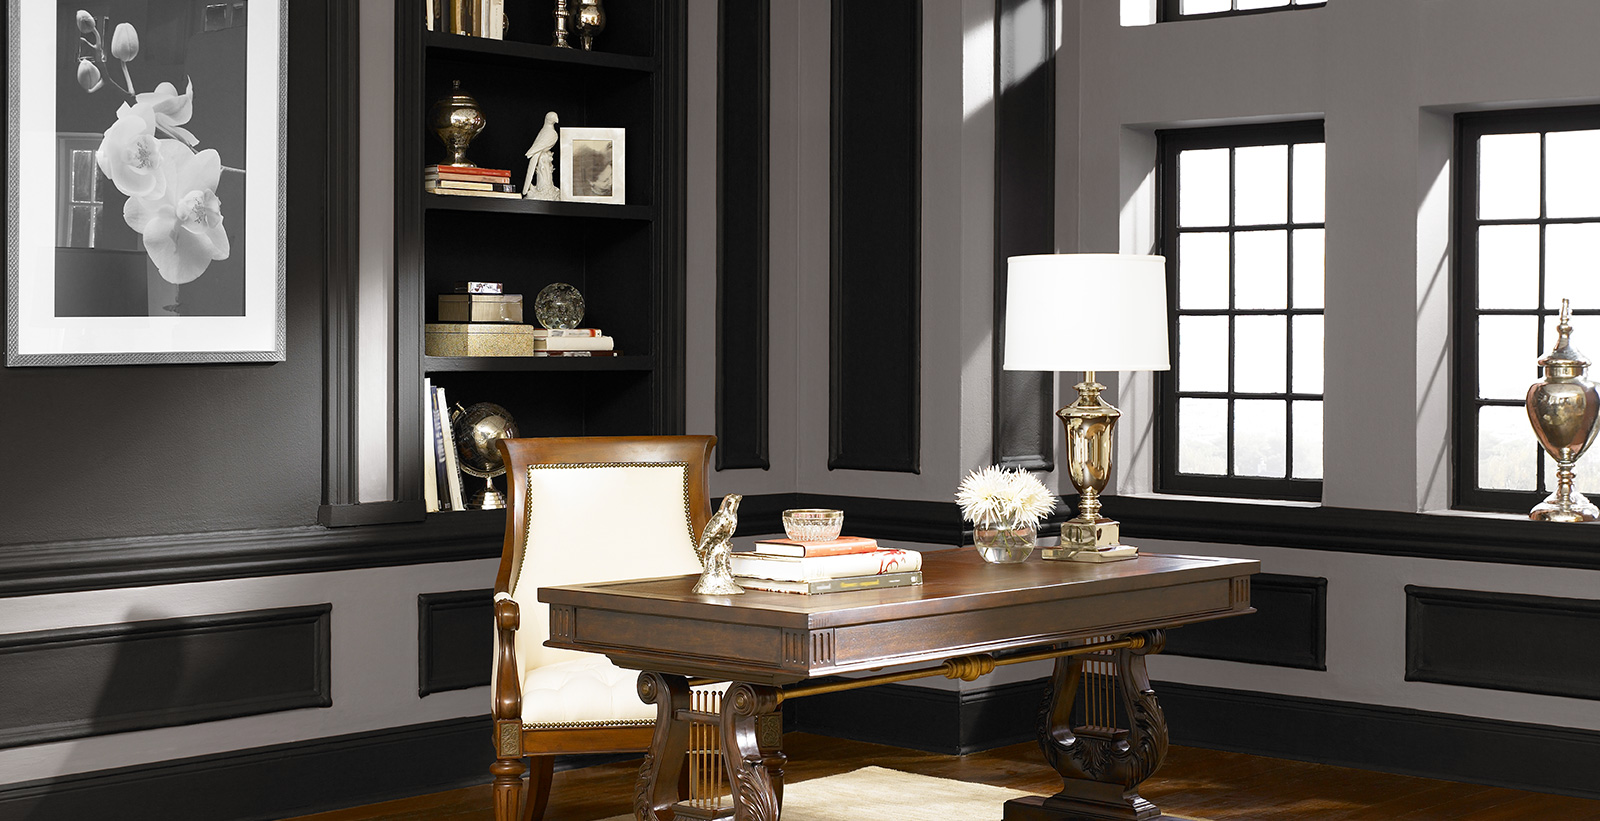 Office workspace with white walls, black trim, and wood furniture, classic style.